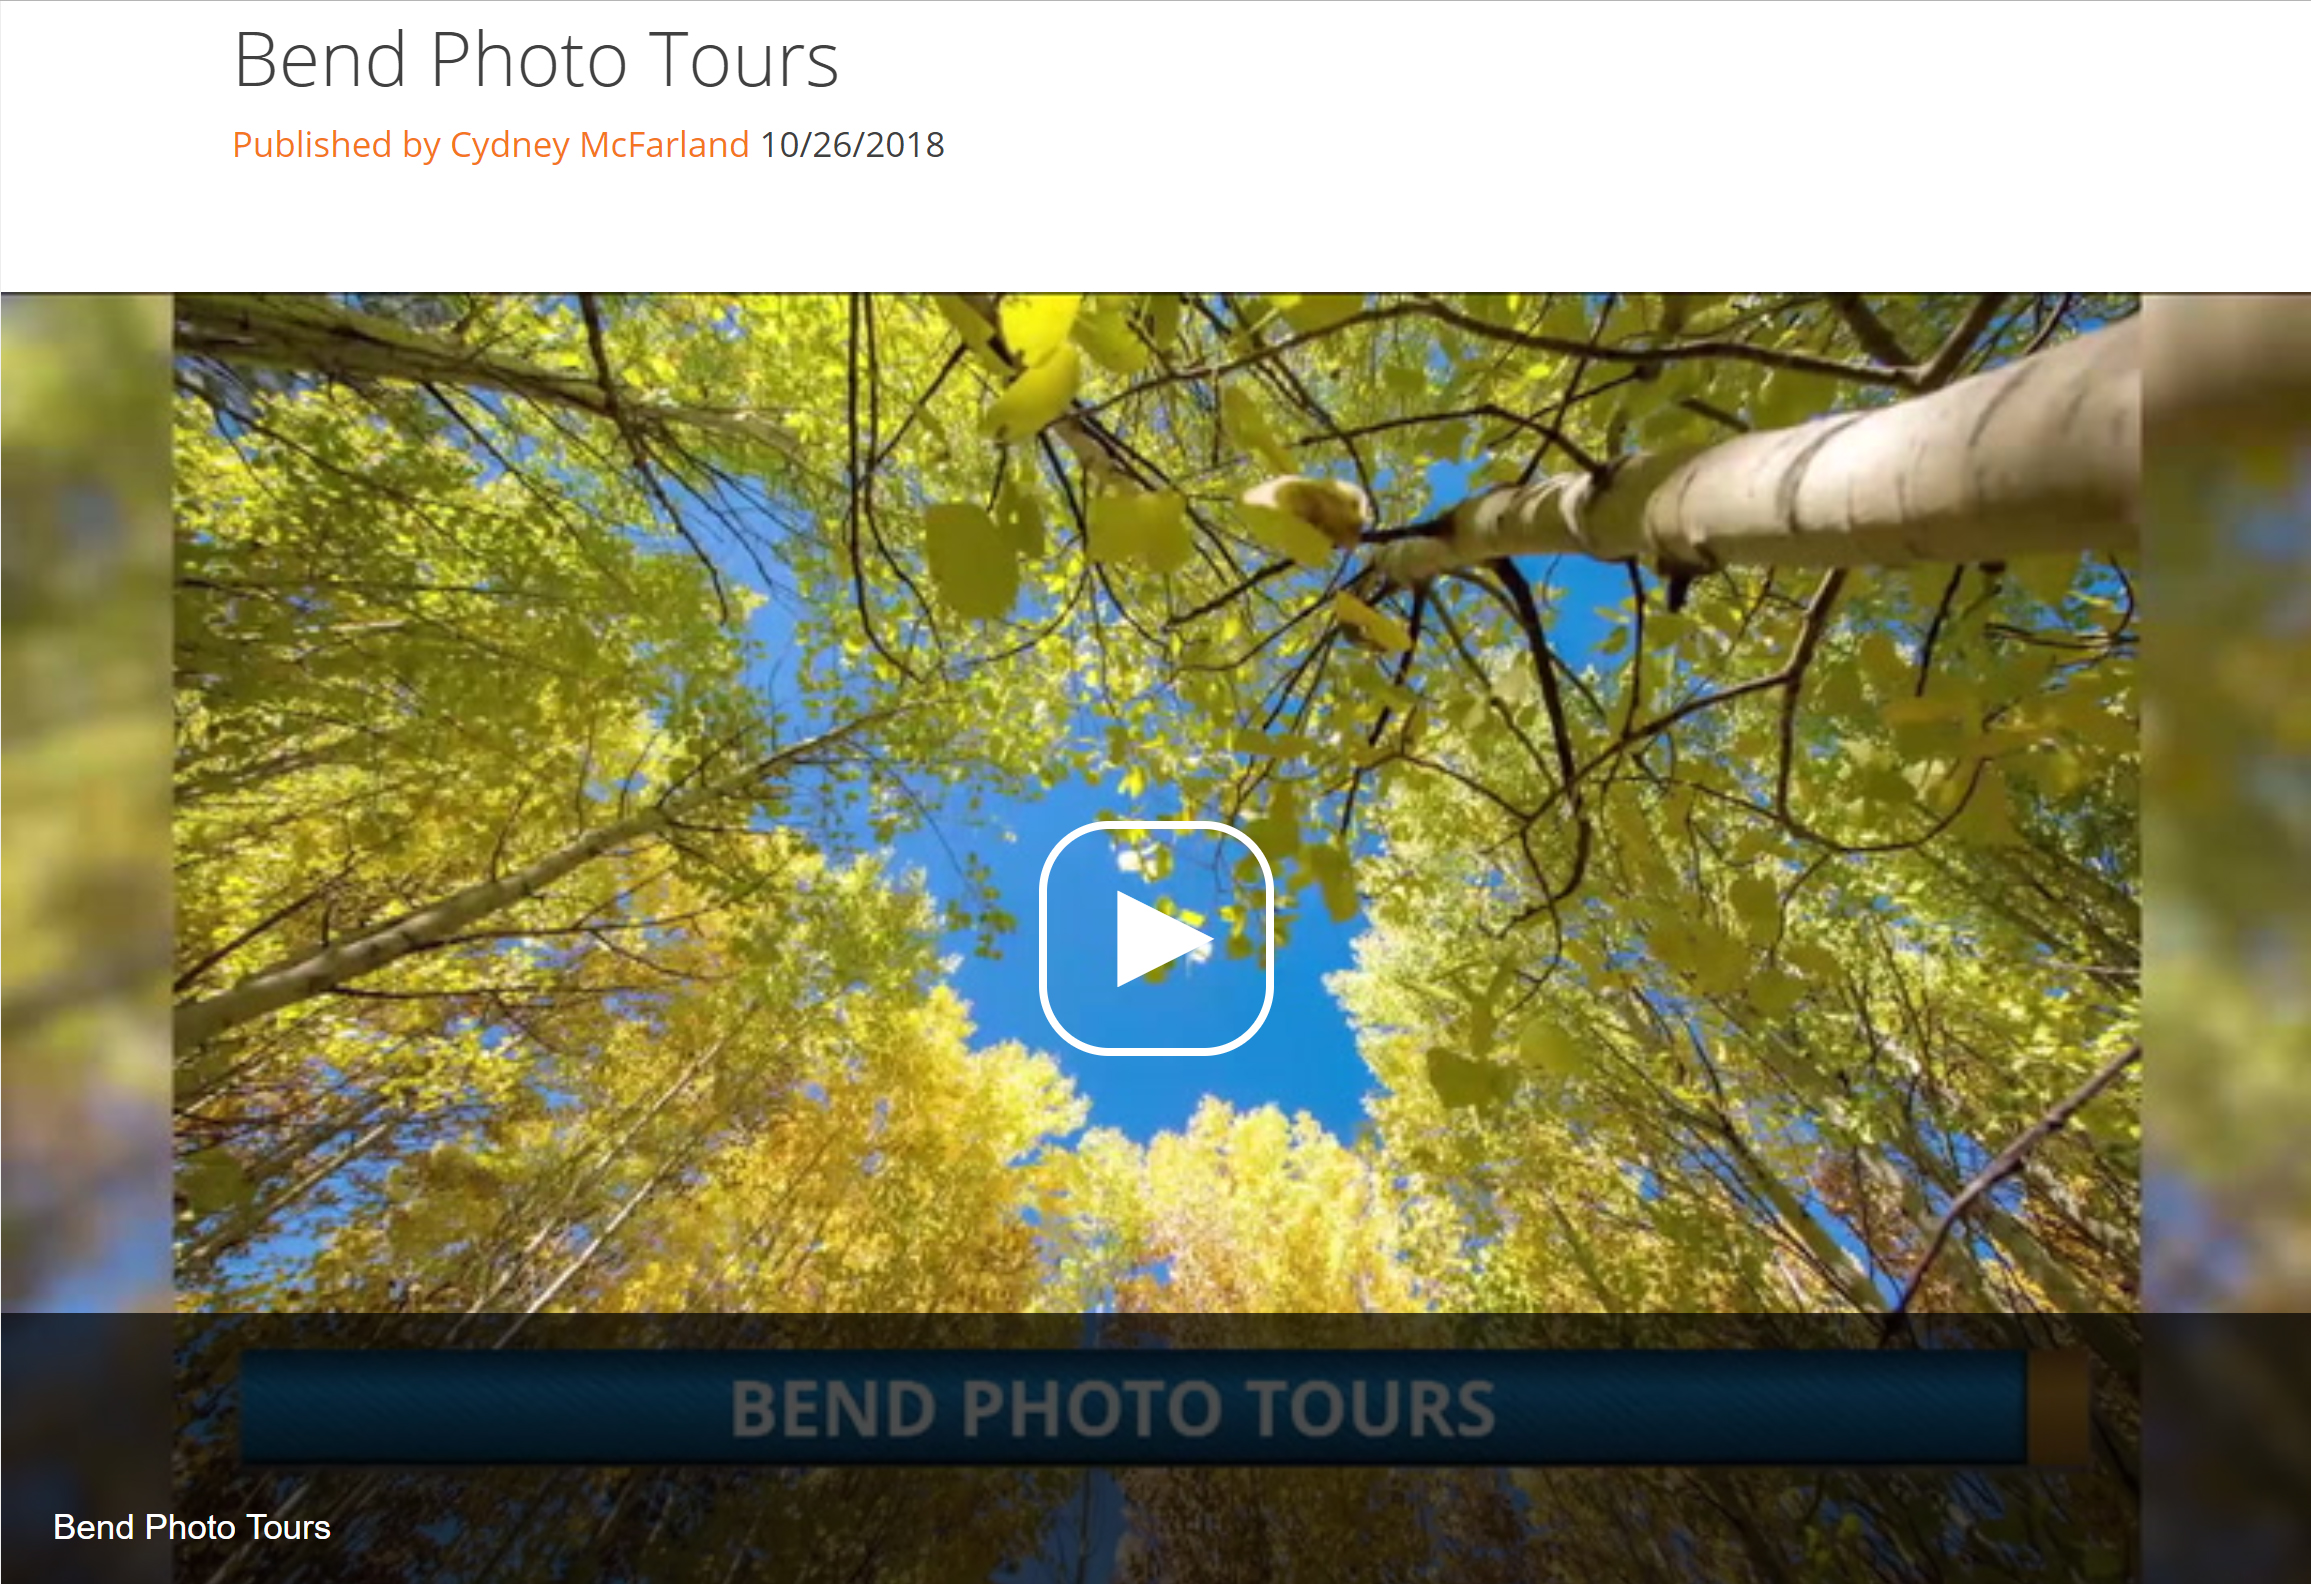 On Air Guest - Photographer Toni Toreno joins us to discuss how you can bring your vacation photos to the next level with one of her tours which teach your camera skills while you travel to beautiful location across Central Oregon.